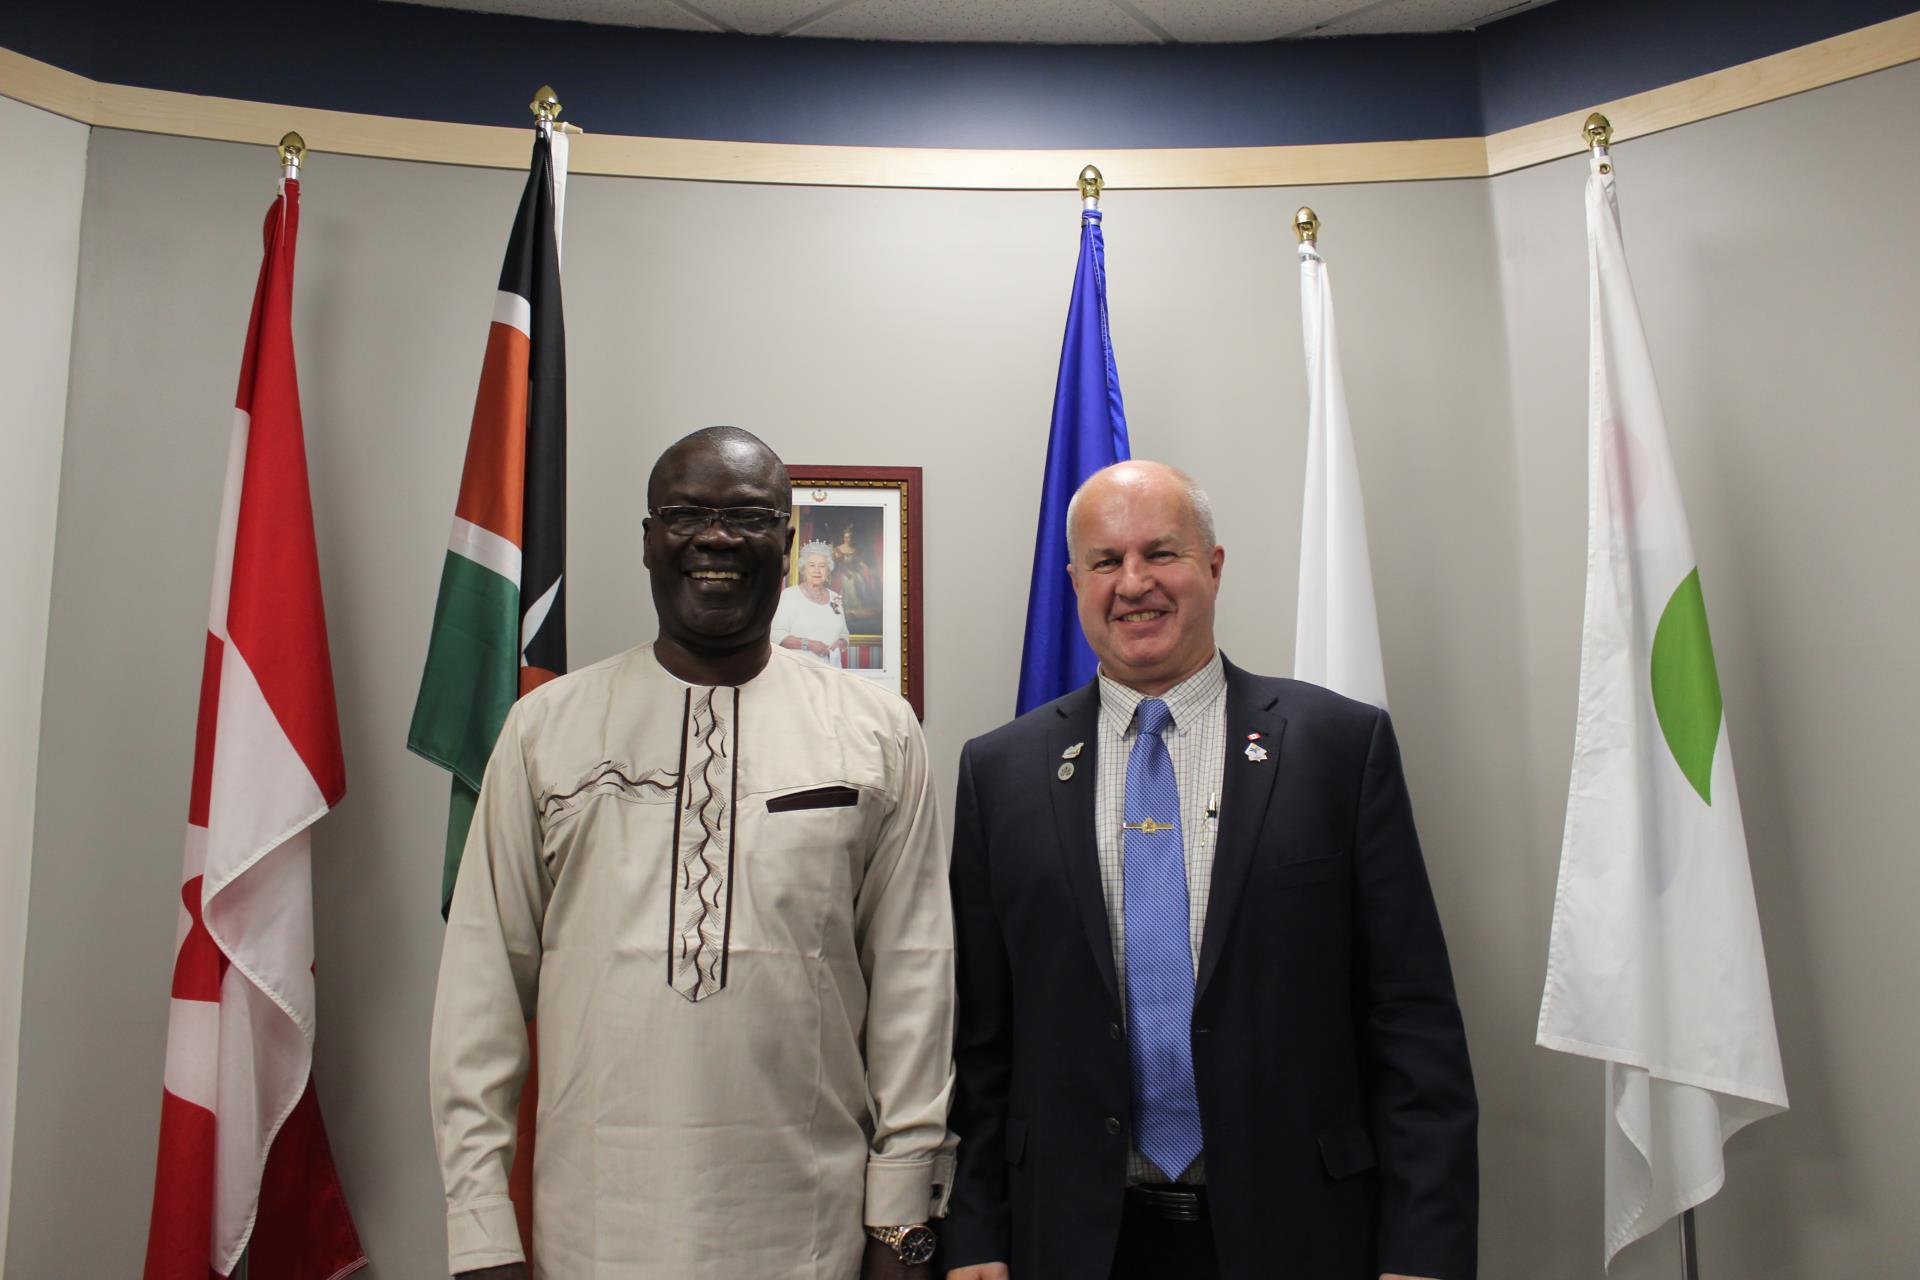 Mayor Prokop and Governor Cornel Rasanga at the September 24, 2018 Council Meeting